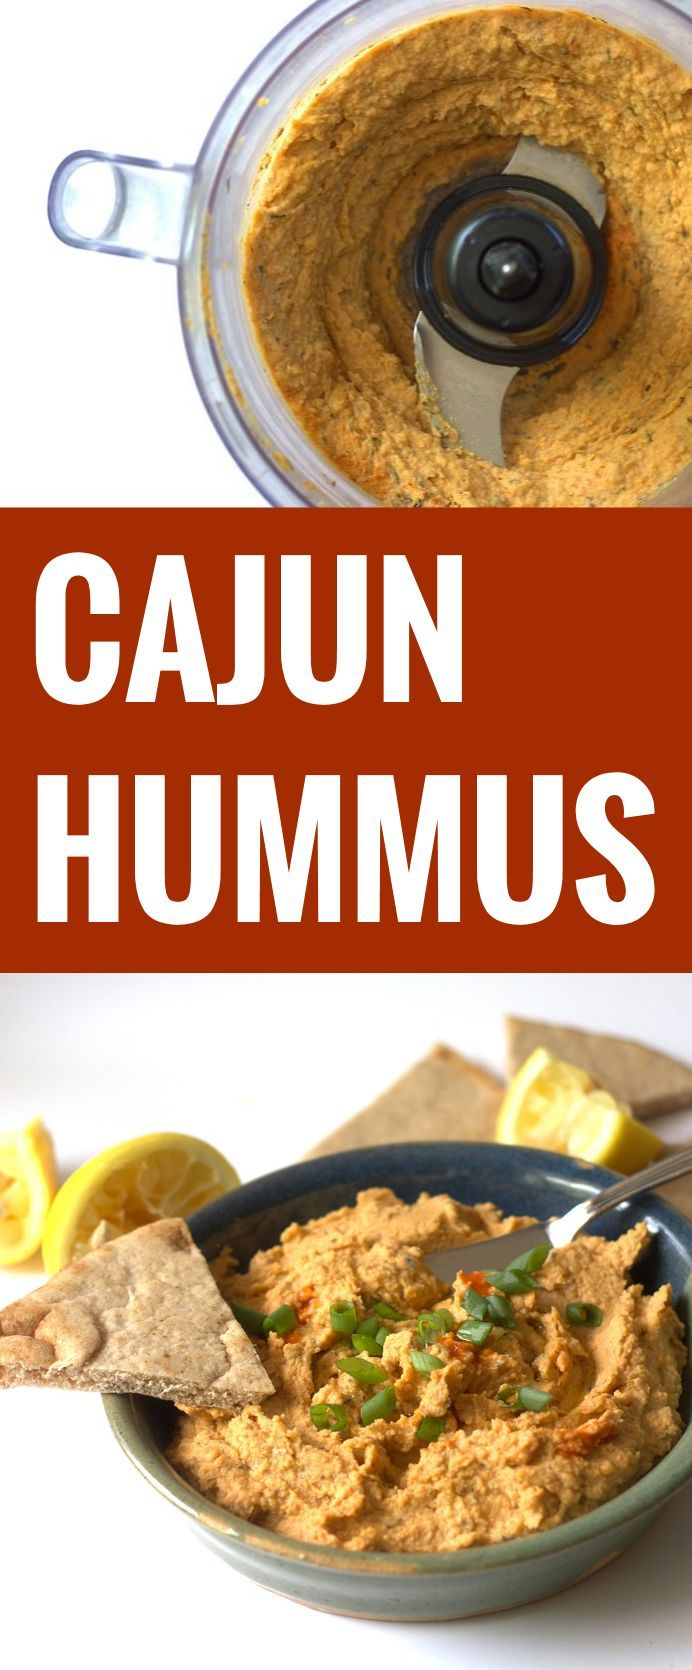 A Mediterranean classic gets a spicy upgrade with herbs and hot cayenne pepper in this zesty Cajun hummus.